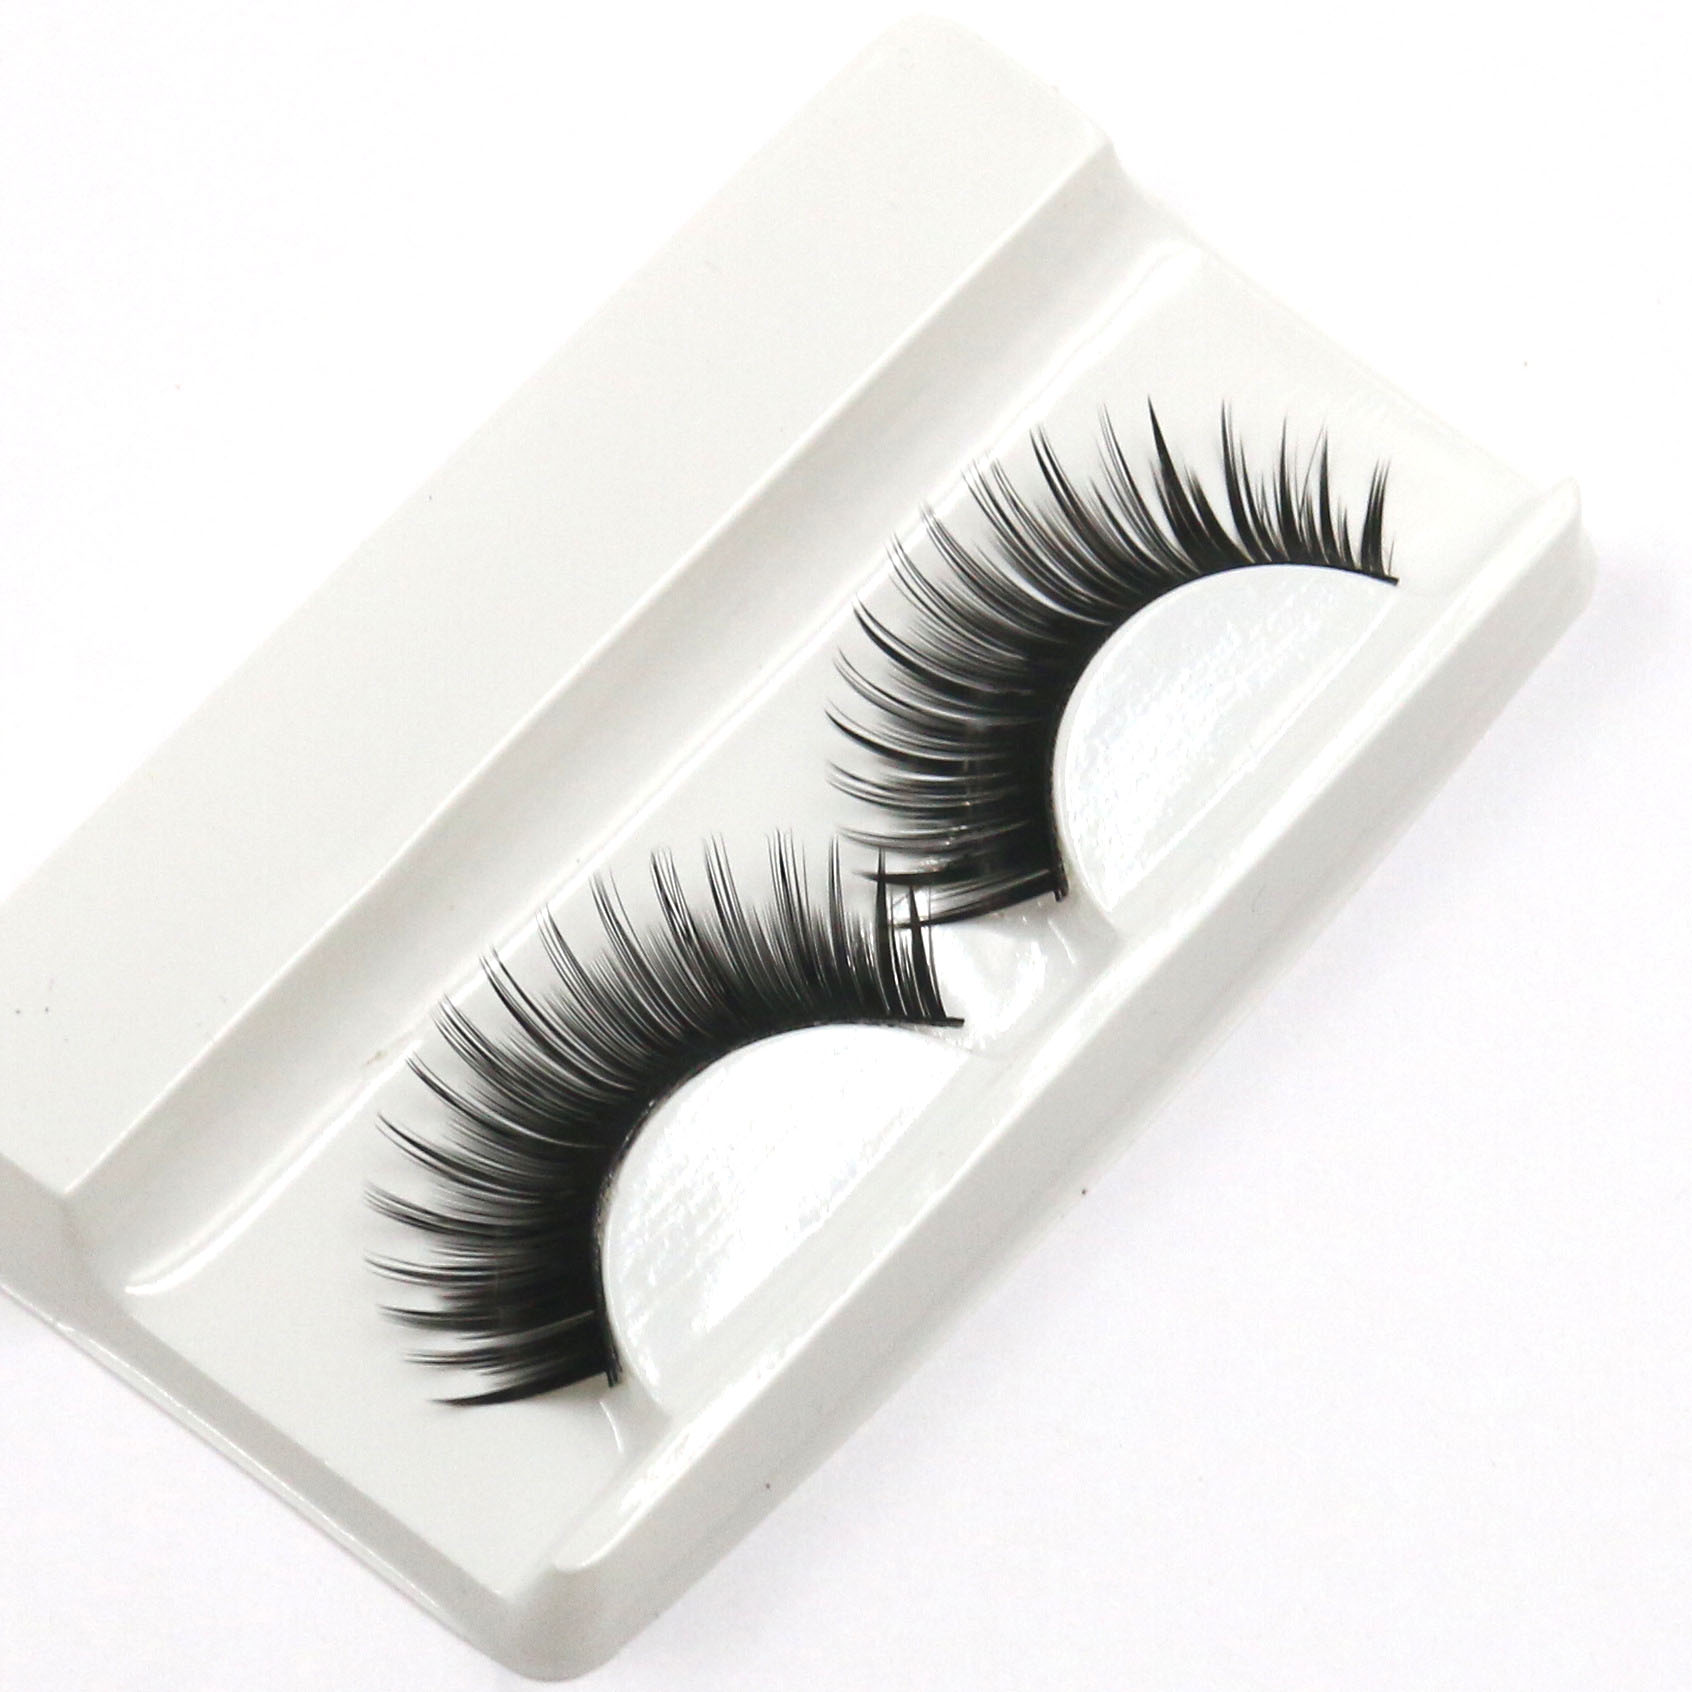 New Fashiona Pair Of Loaded Cross  False Eyelashes  Fashion  Makeup  Eyelash Extension